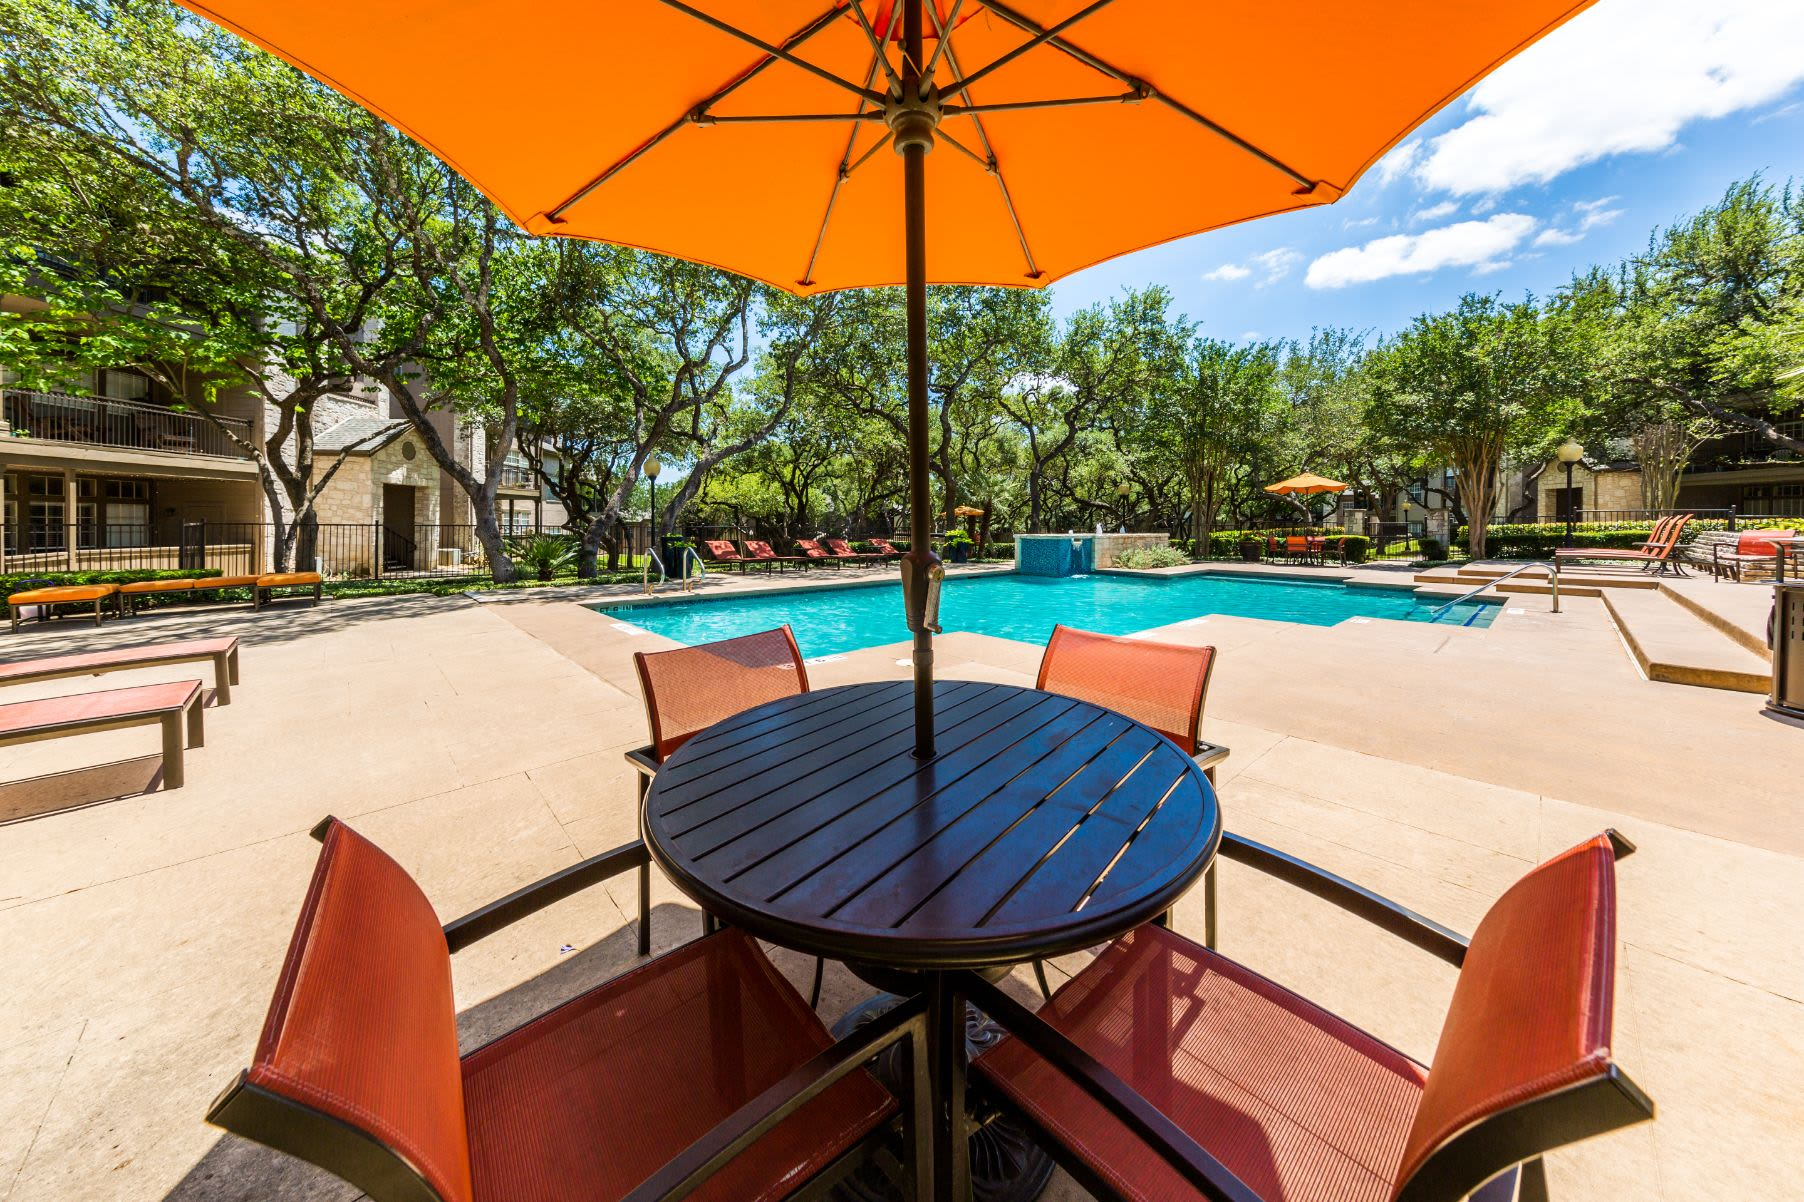 Table and chairs by the pool at Marquis at Deerfield in San Antonio, Texas